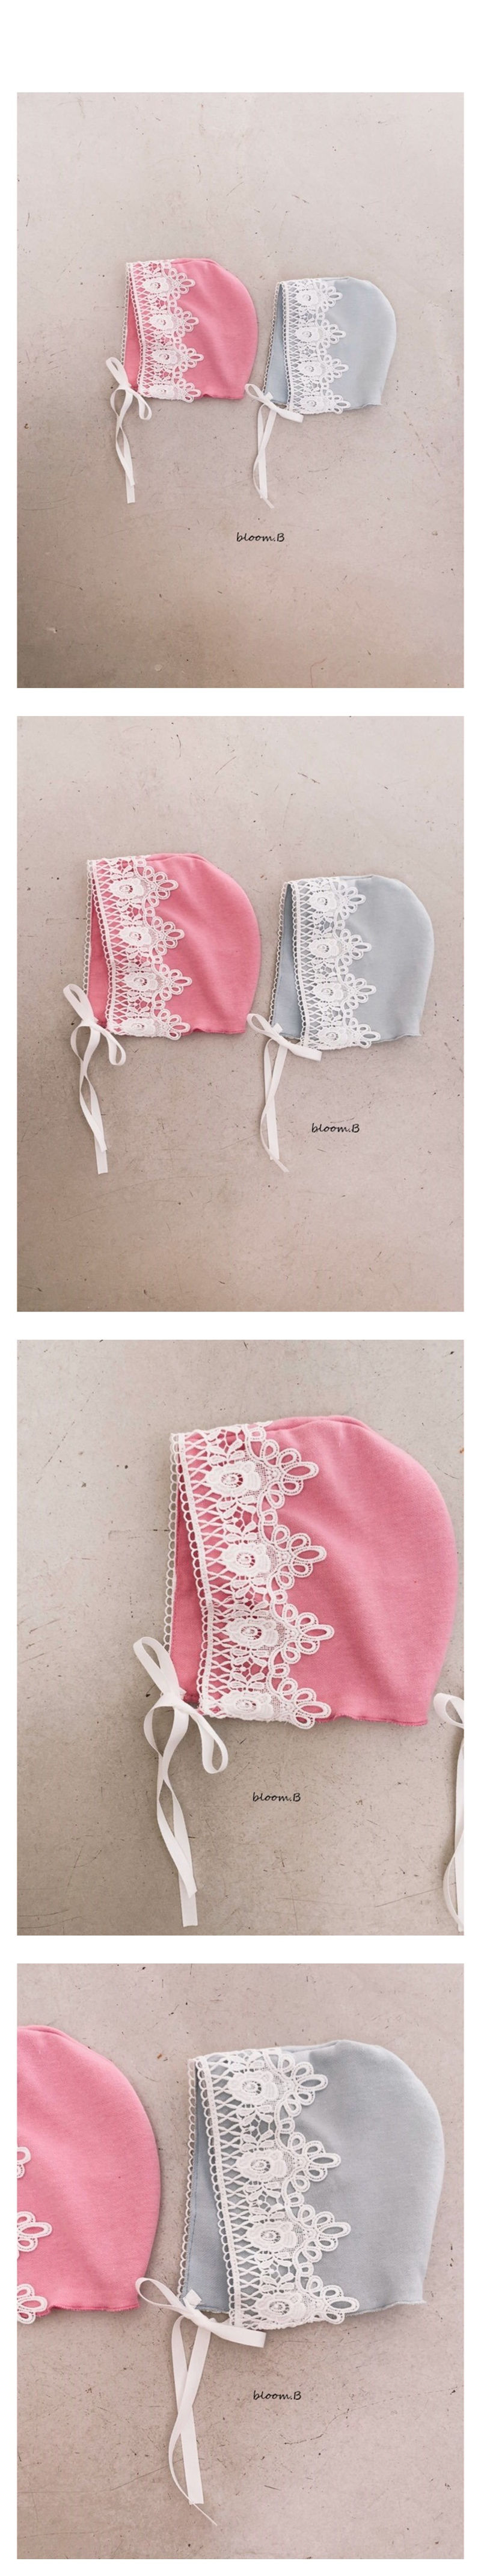 BLOOM B - Korean Children Fashion - #Kfashion4kids - Tiara Bonnet